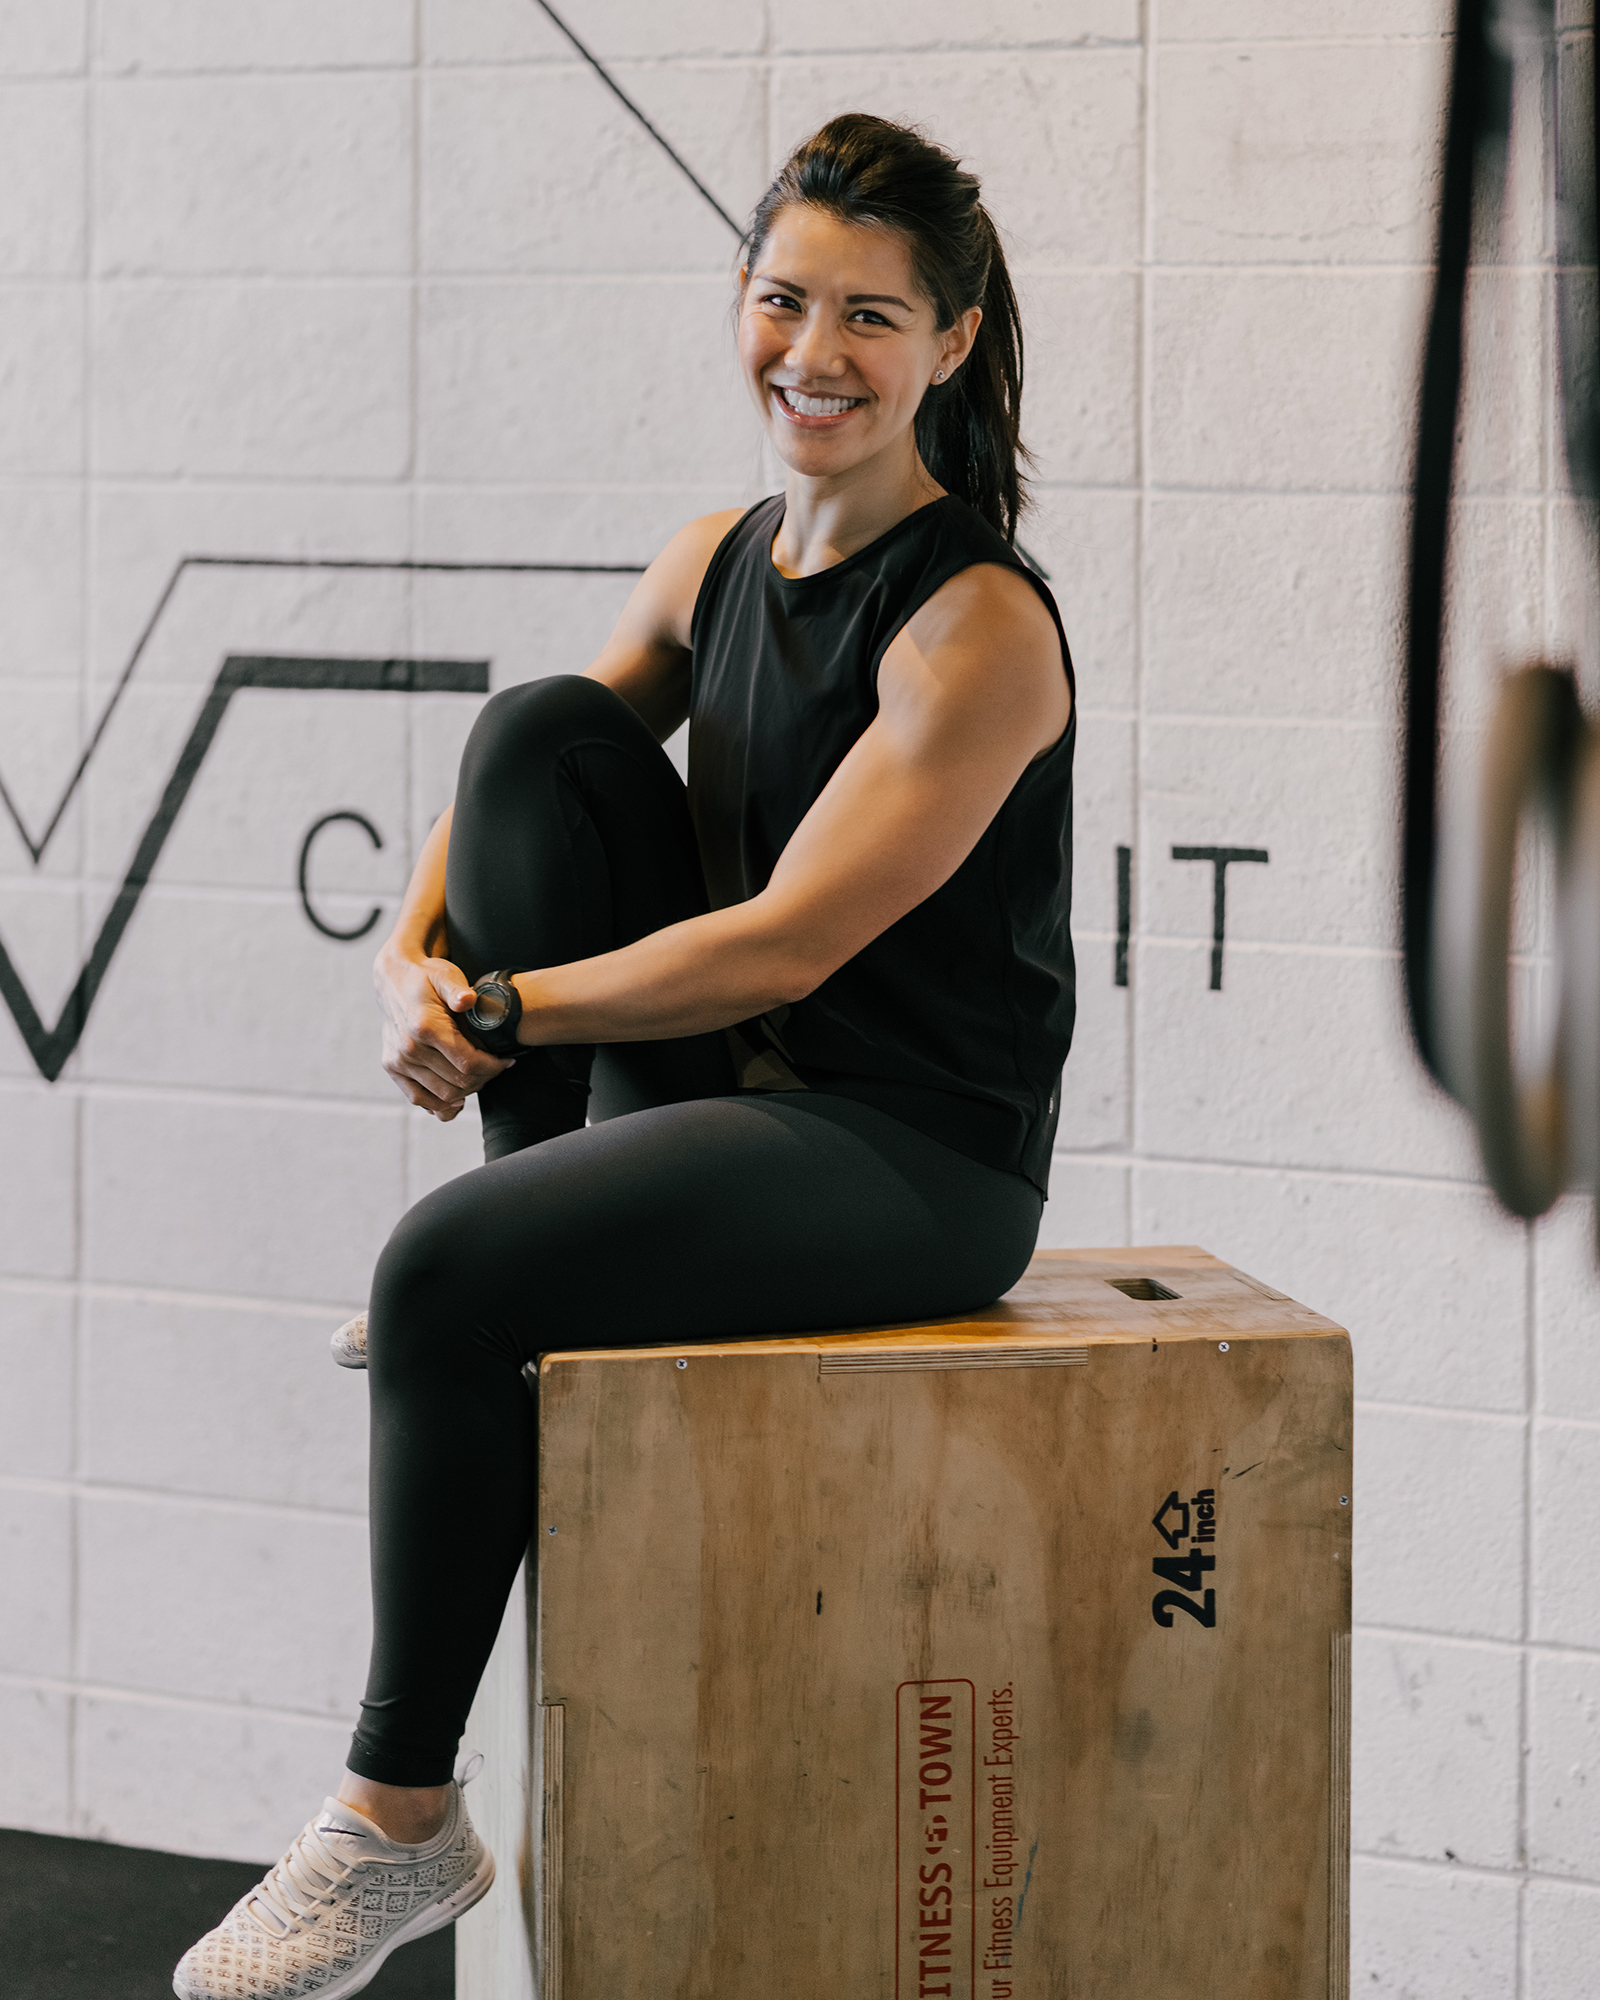 Anne - Coach • Personal Trainer • Owner